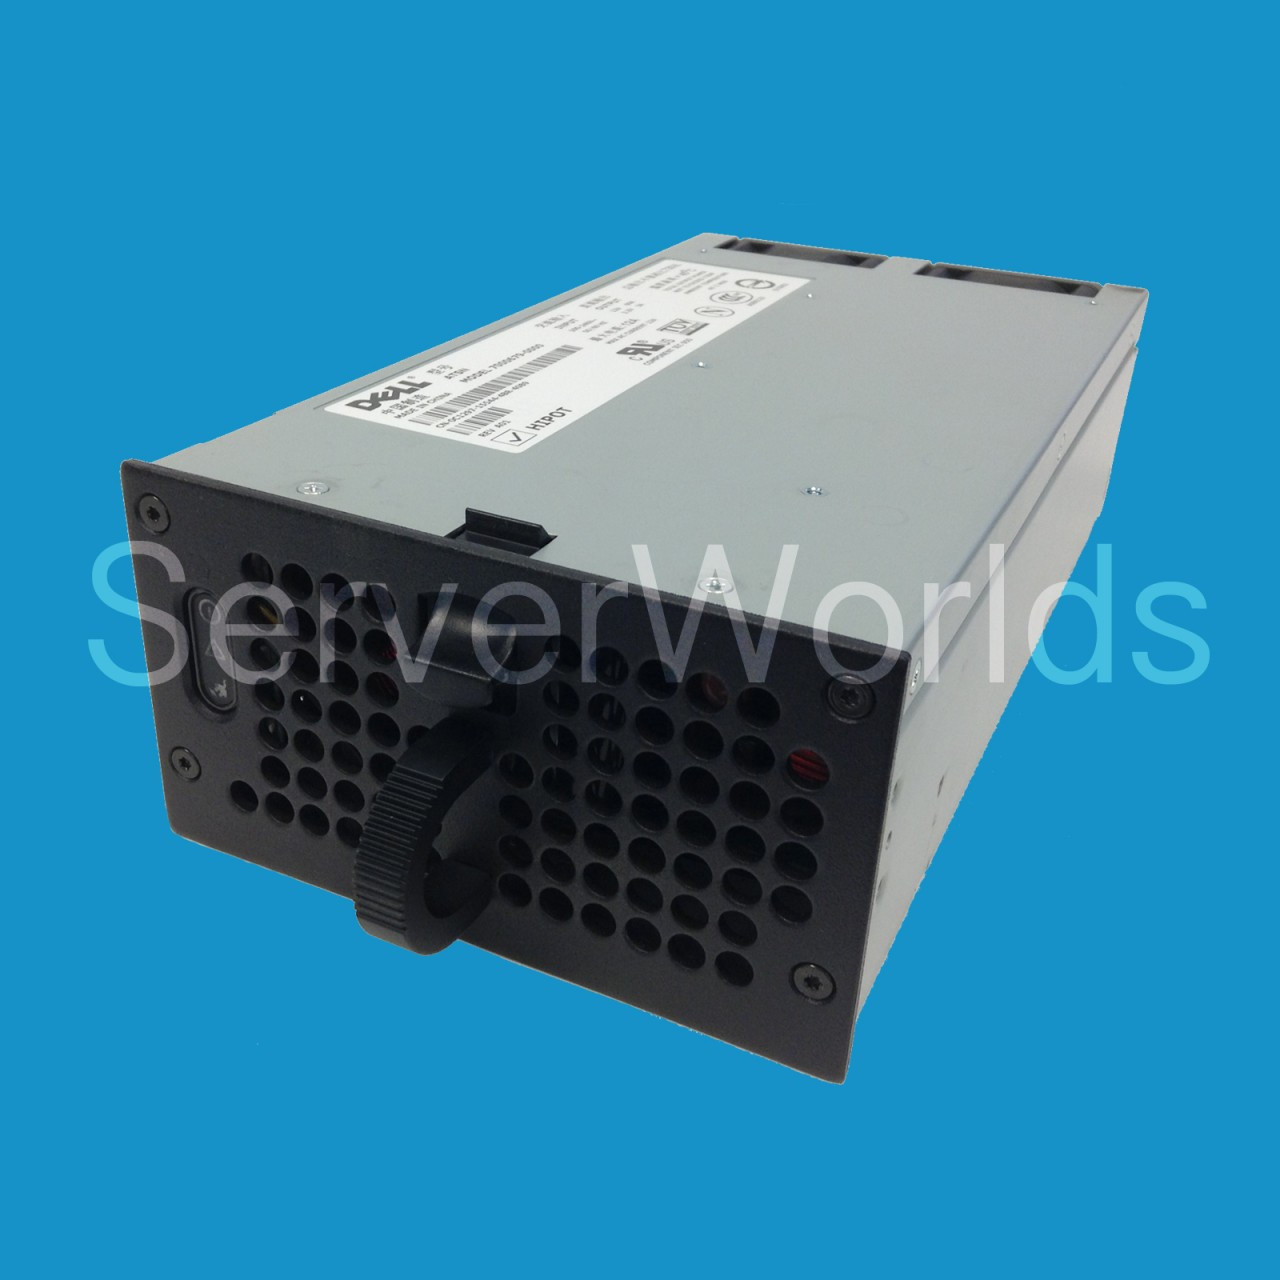 Dell NPS-730AB | Dell C1297 | Dell Poweredge 2600 Power